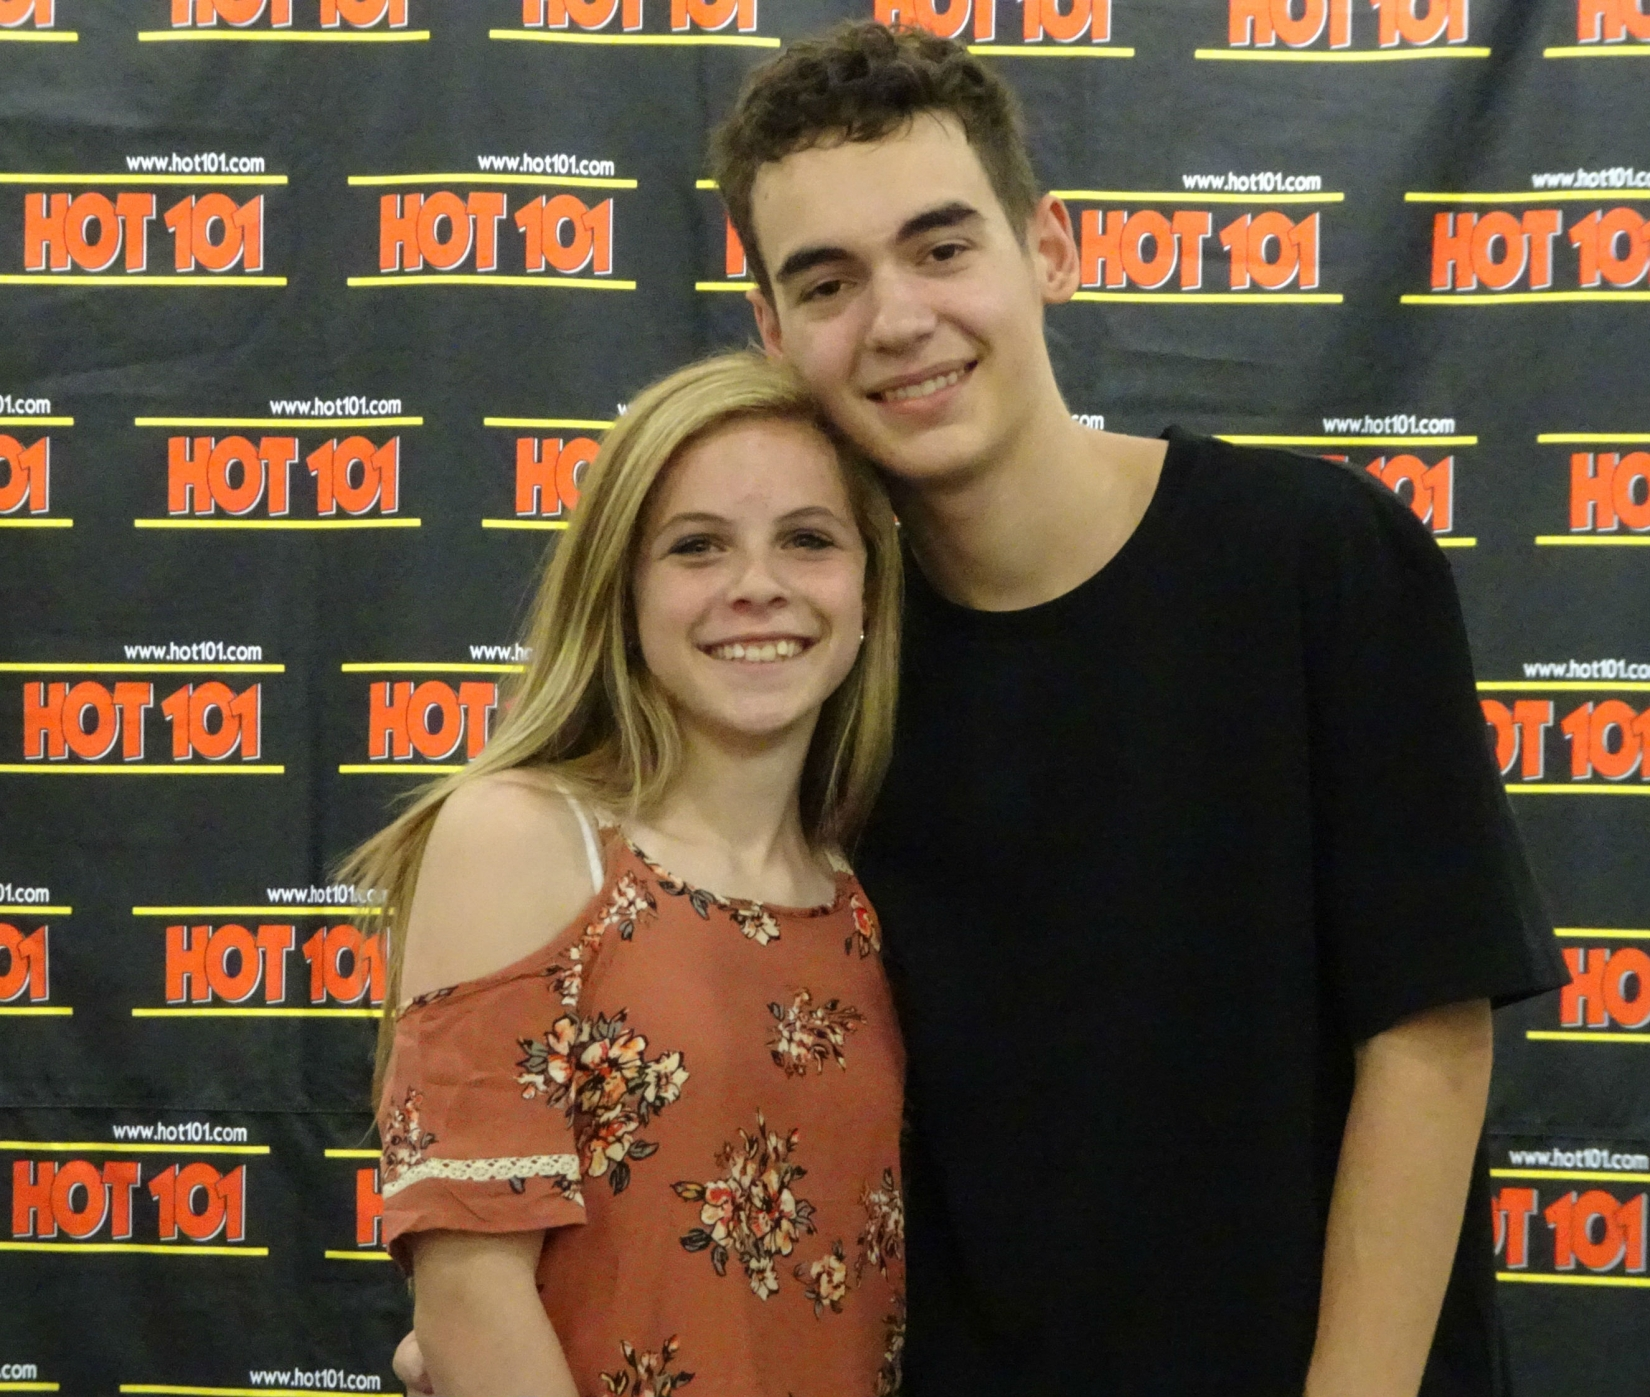 HOT 101 Artist Encounter with Alex Angelo.